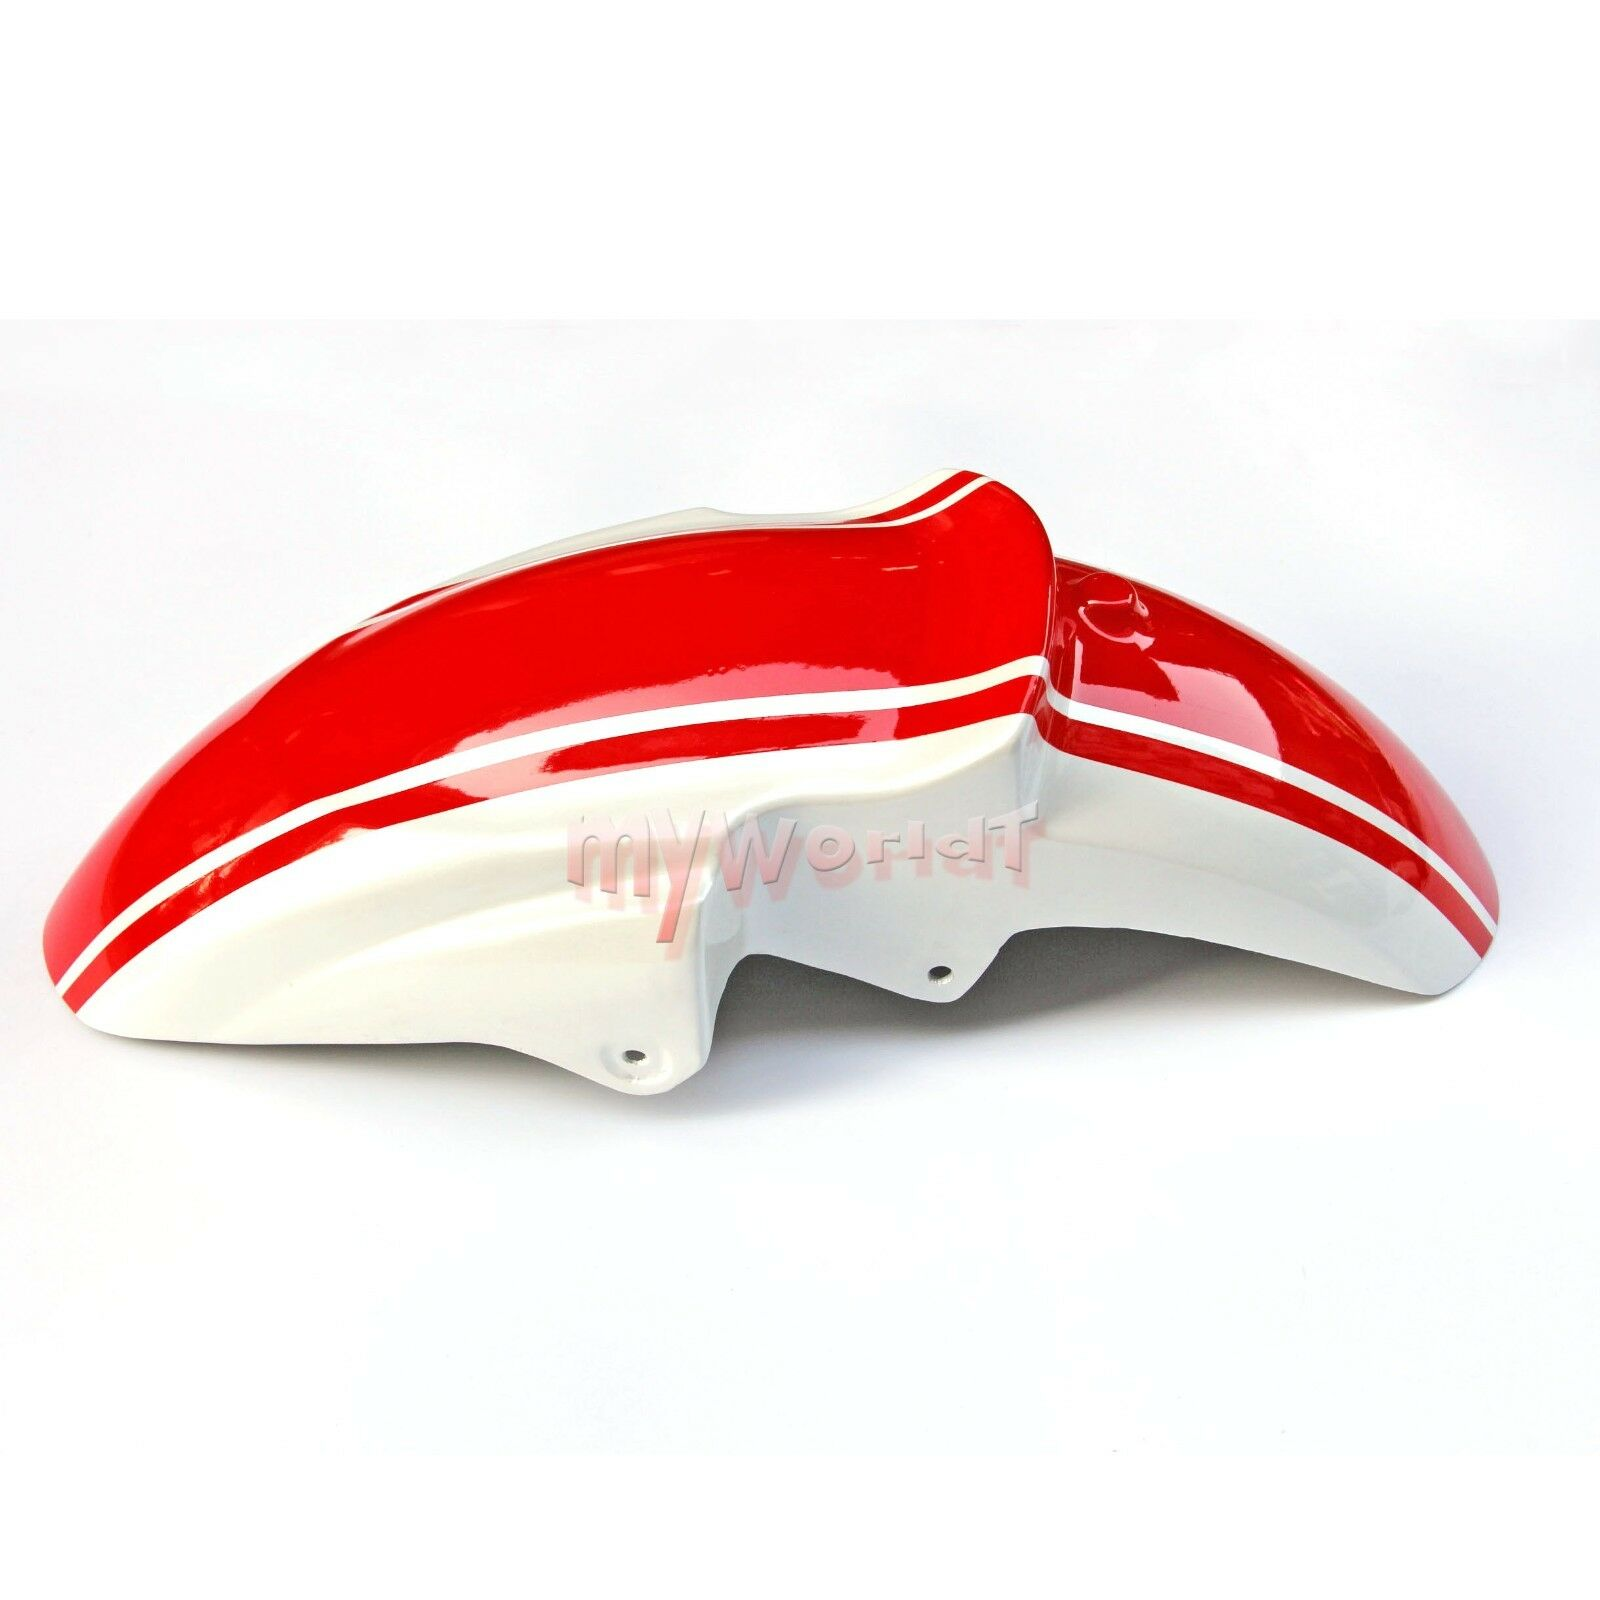 New For Yamaha FZ6N FZ6S Motorcycle Front Tire Fender Fairing Part Red